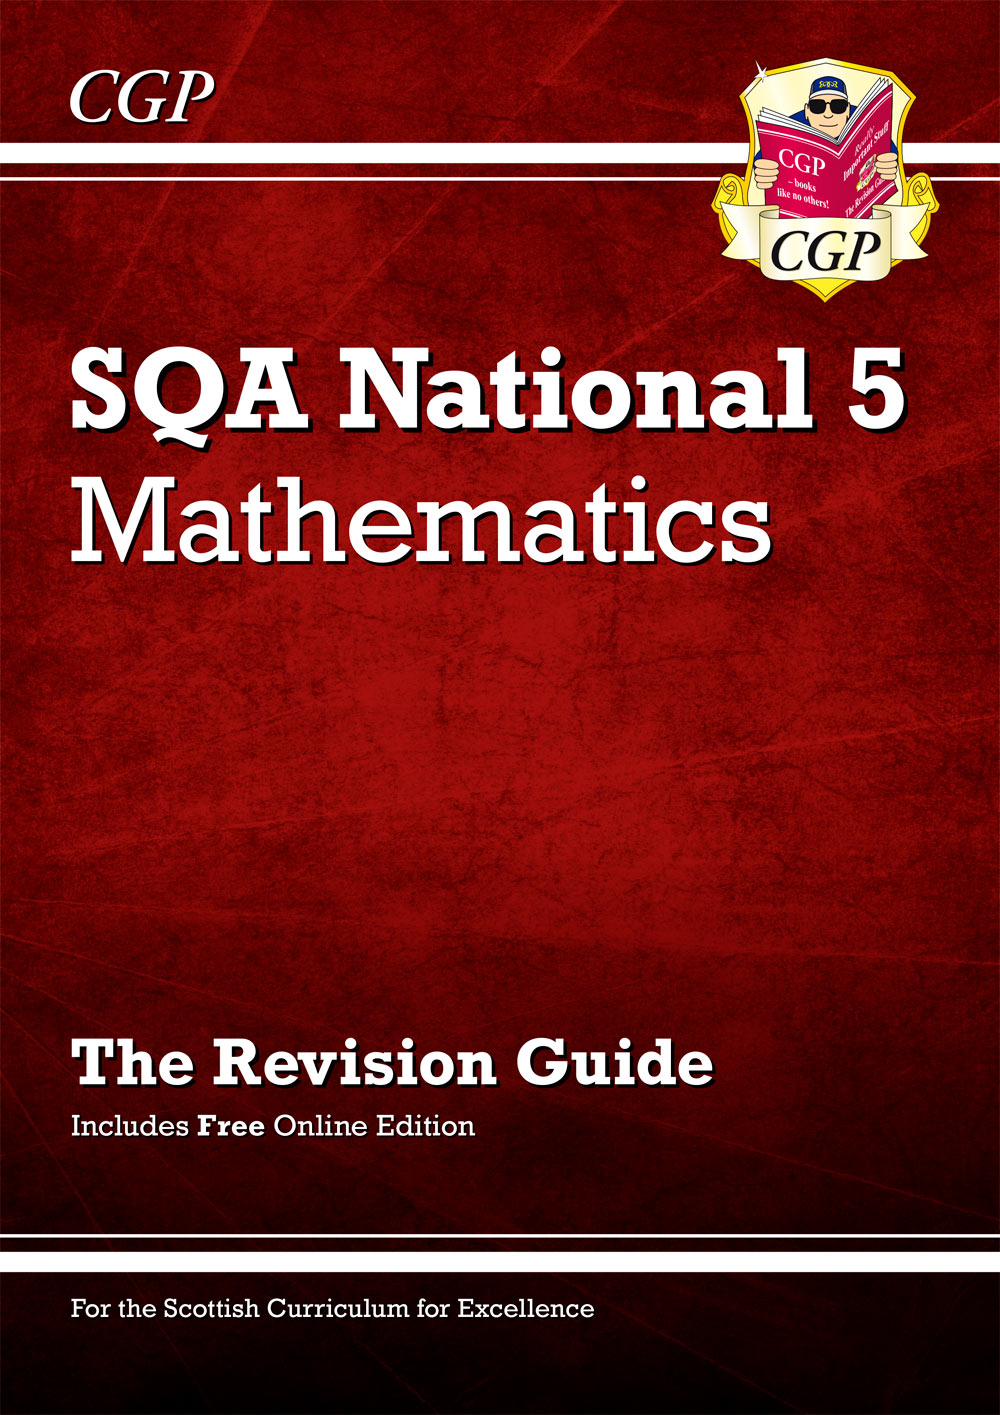 MZHR41 - National 5 Maths: SQA Revision Guide with Online Edition